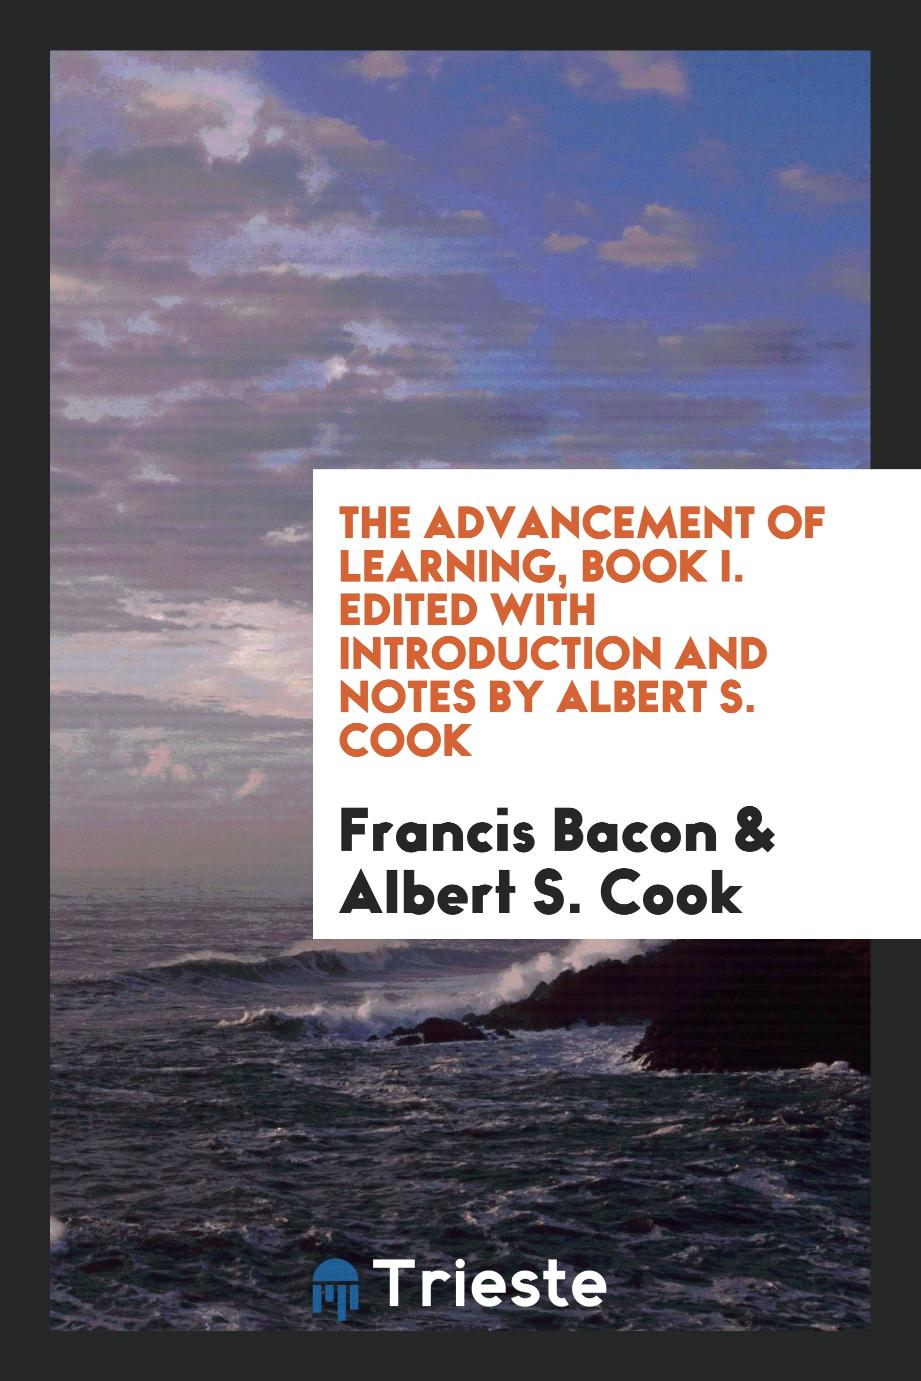 The Advancement of Learning, Book I. Edited with Introduction and Notes by Albert S. Cook